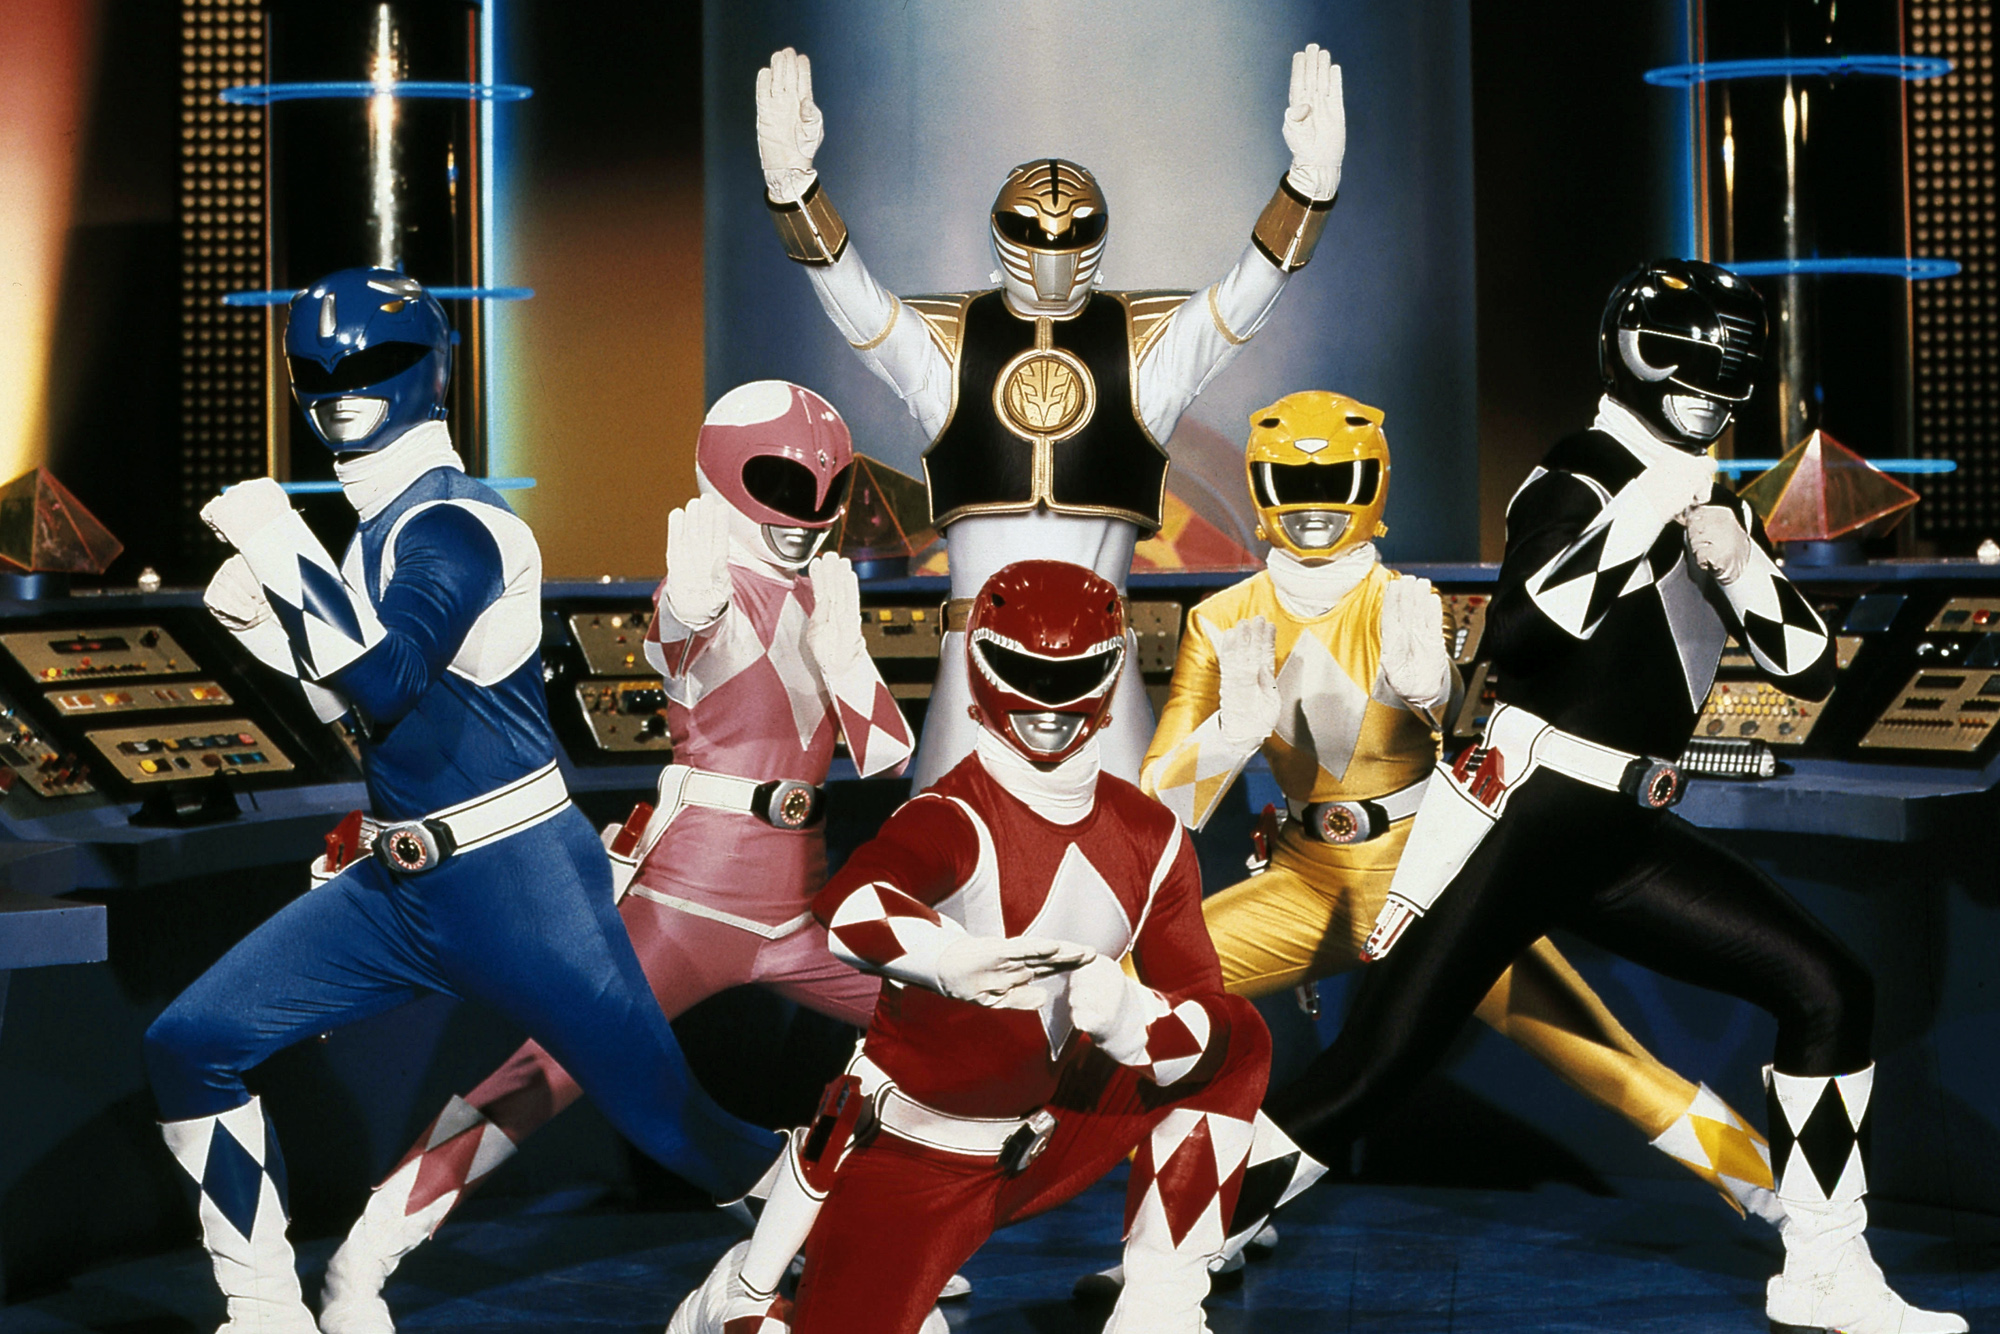 power rangers tv show to become netflix exclusive in 2017 | gamesradar+